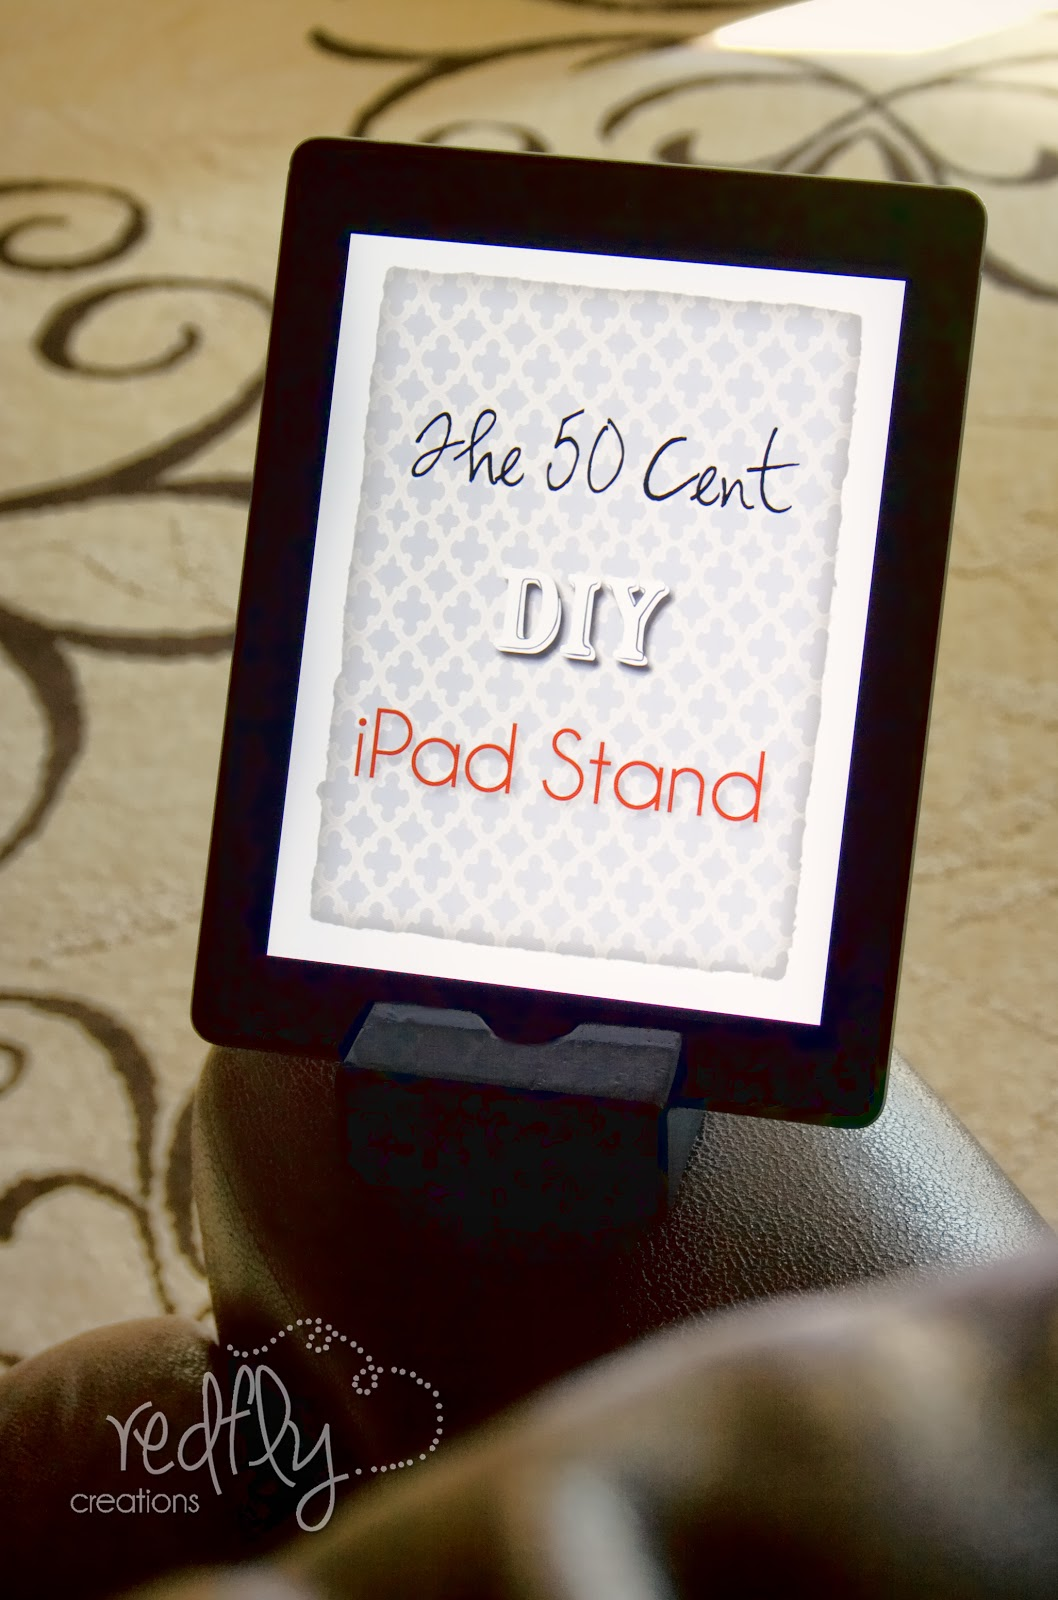 Redfly Creations: The 50-Cent DIY iPad Stand